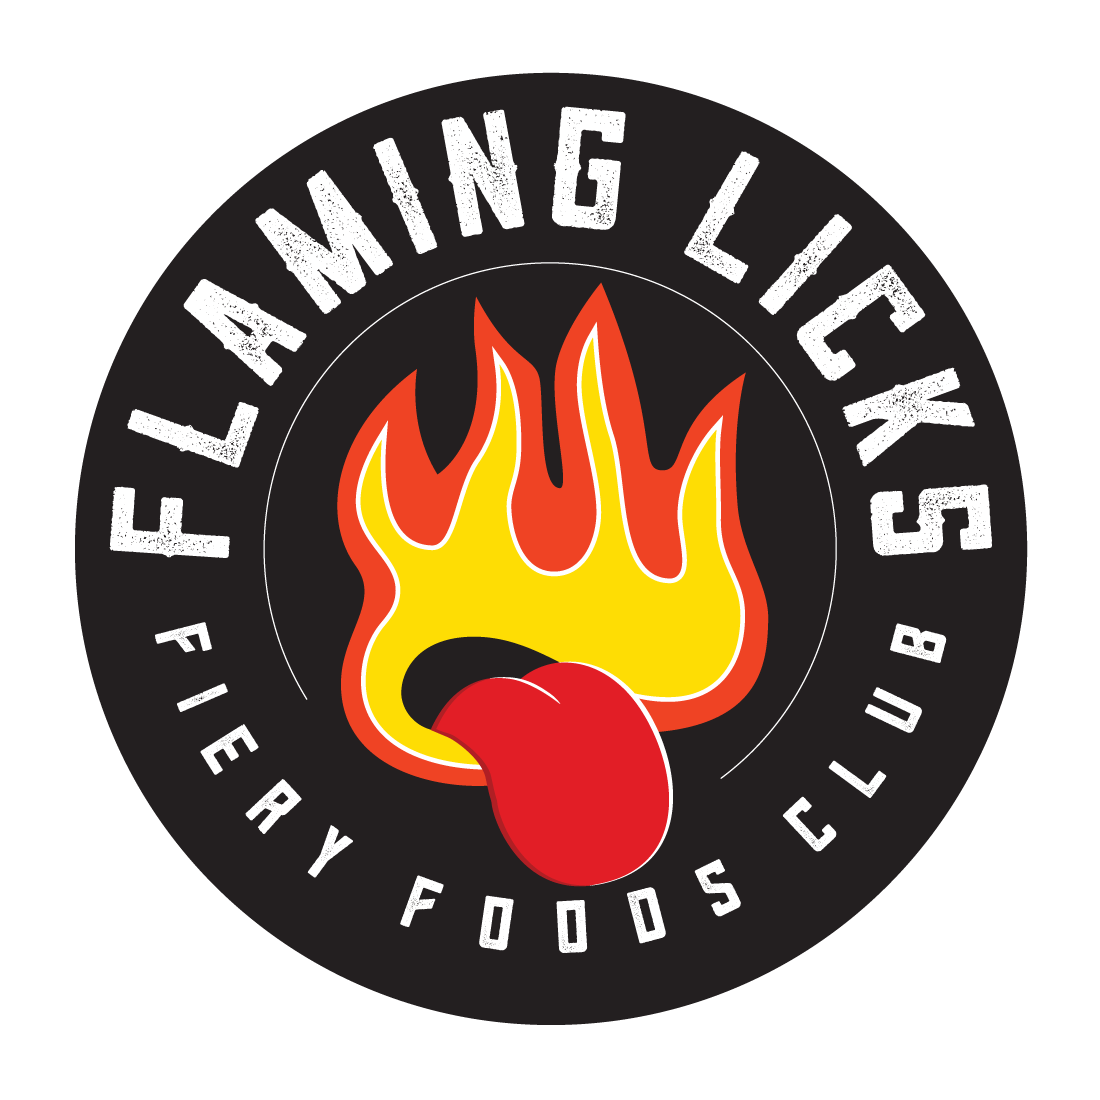 Flaming Licks Wimborne Chilli Shop logo